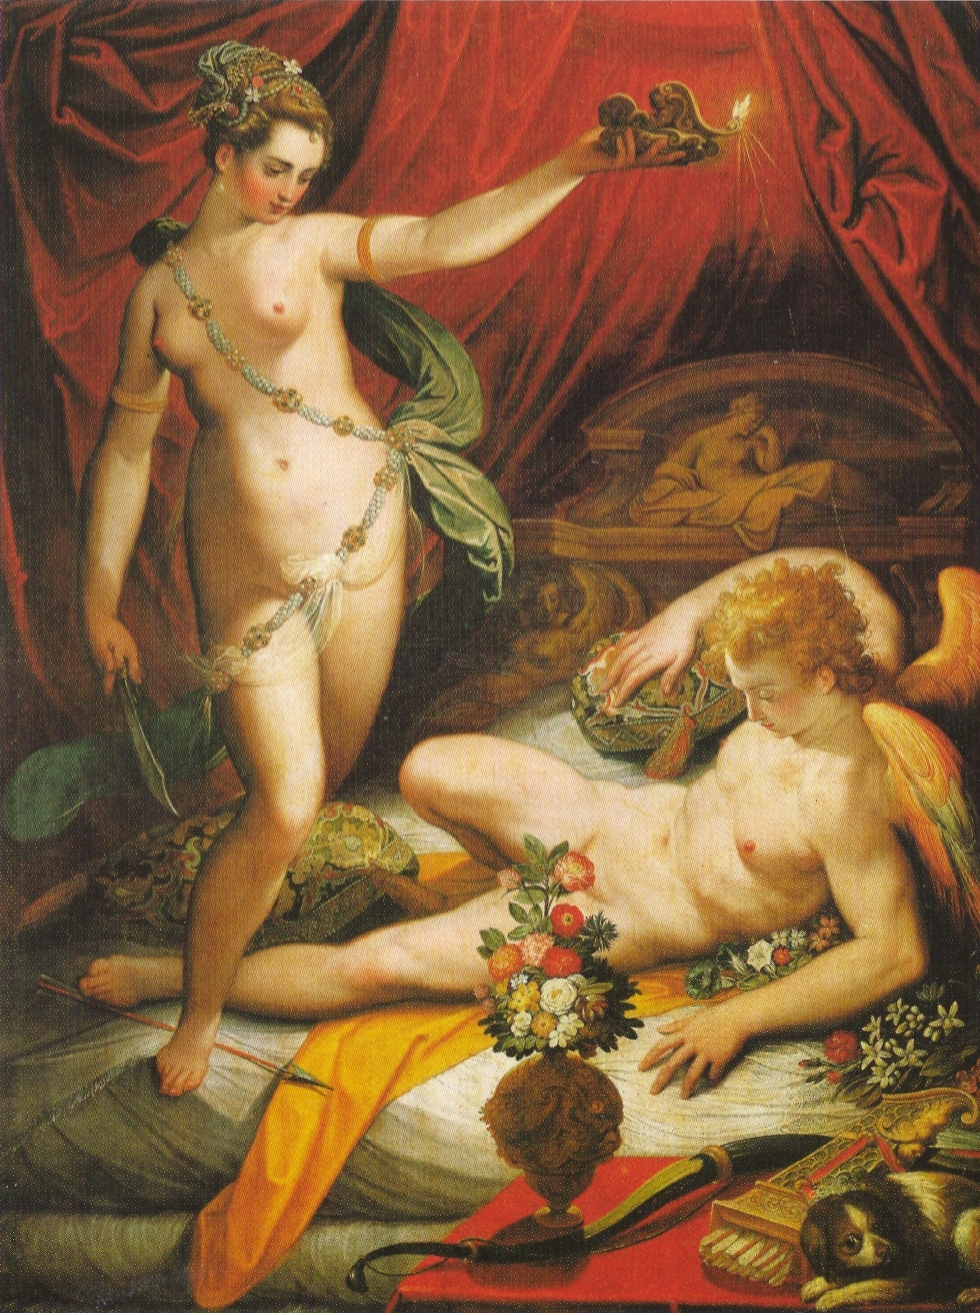 http://upload.wikimedia.org/wikipedia/commons/0/08/Jacopo_Zucchi_-_Amor_and_Psyche.jpg